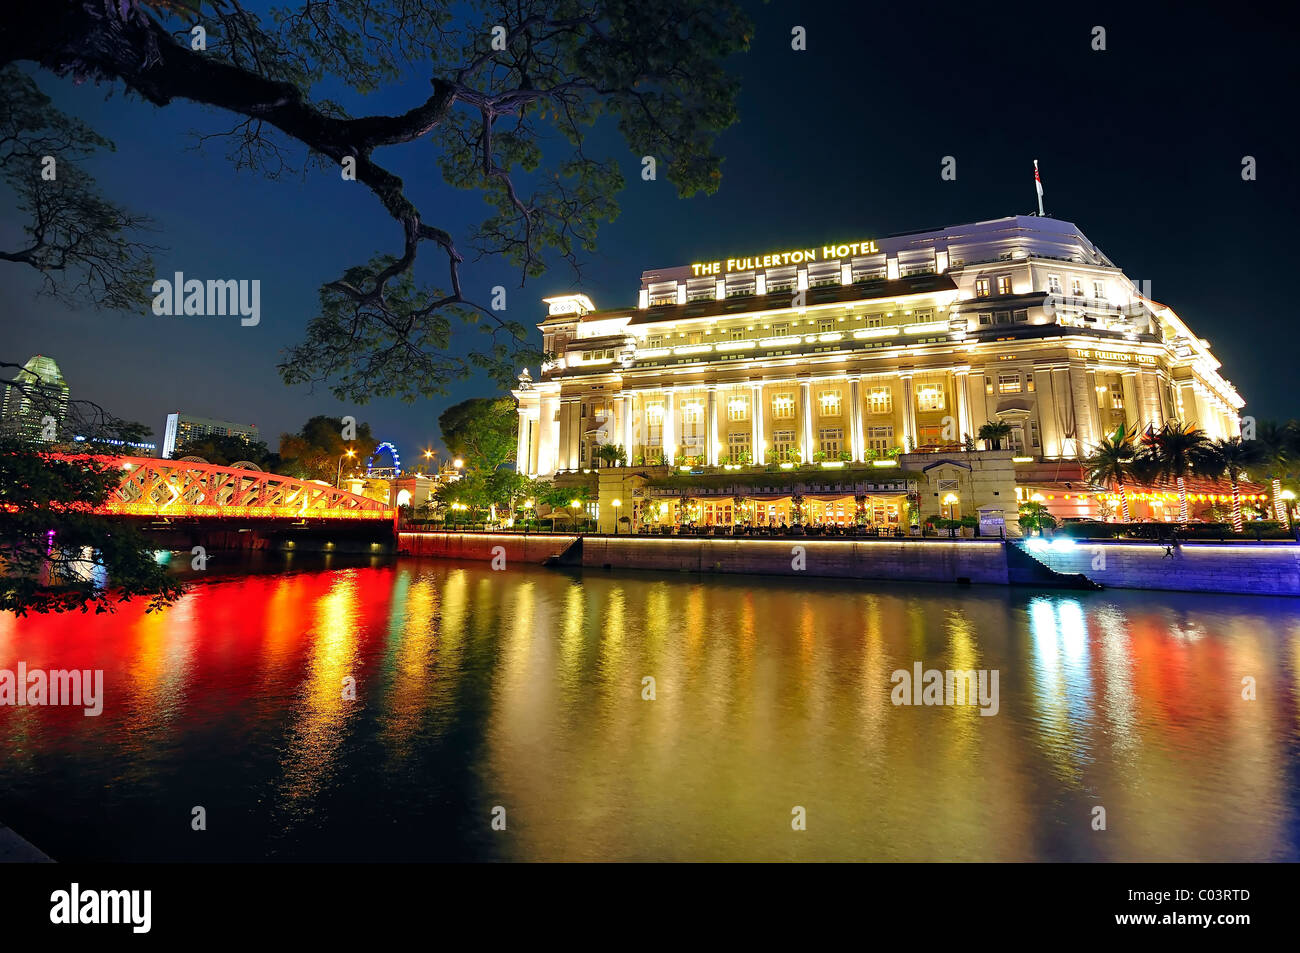 The Fullerton Hotel decked in festive lights during the Chinese New Year celebration in Singapore. - Stock Image